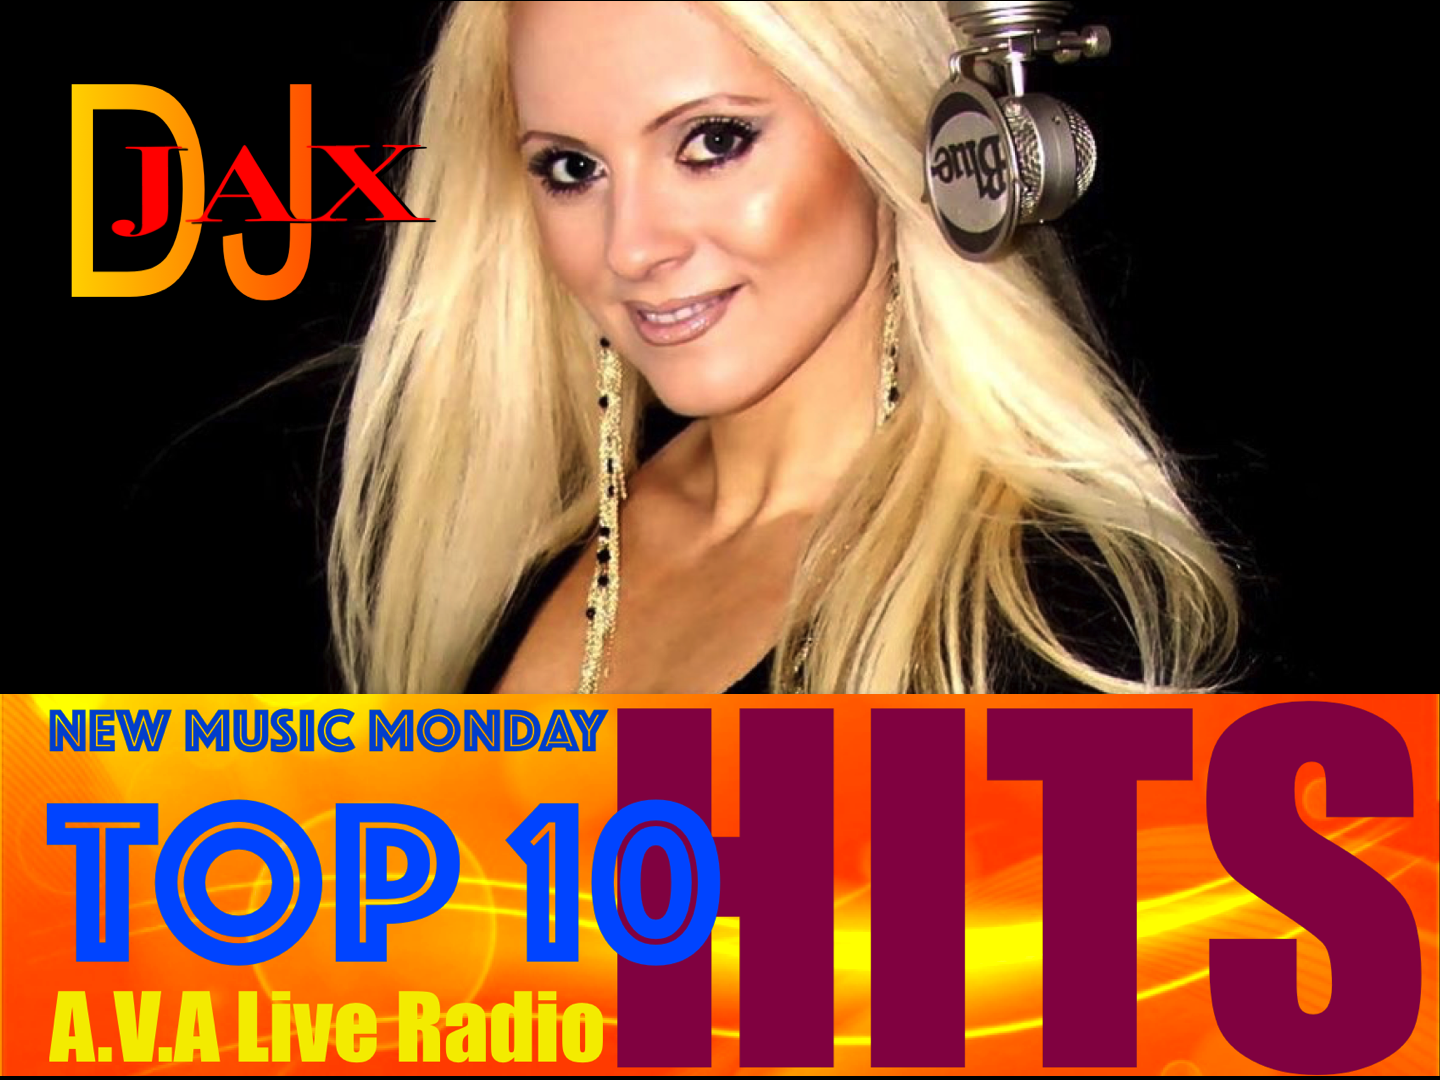 6.5 New Music Monday with Jacqueline Jax